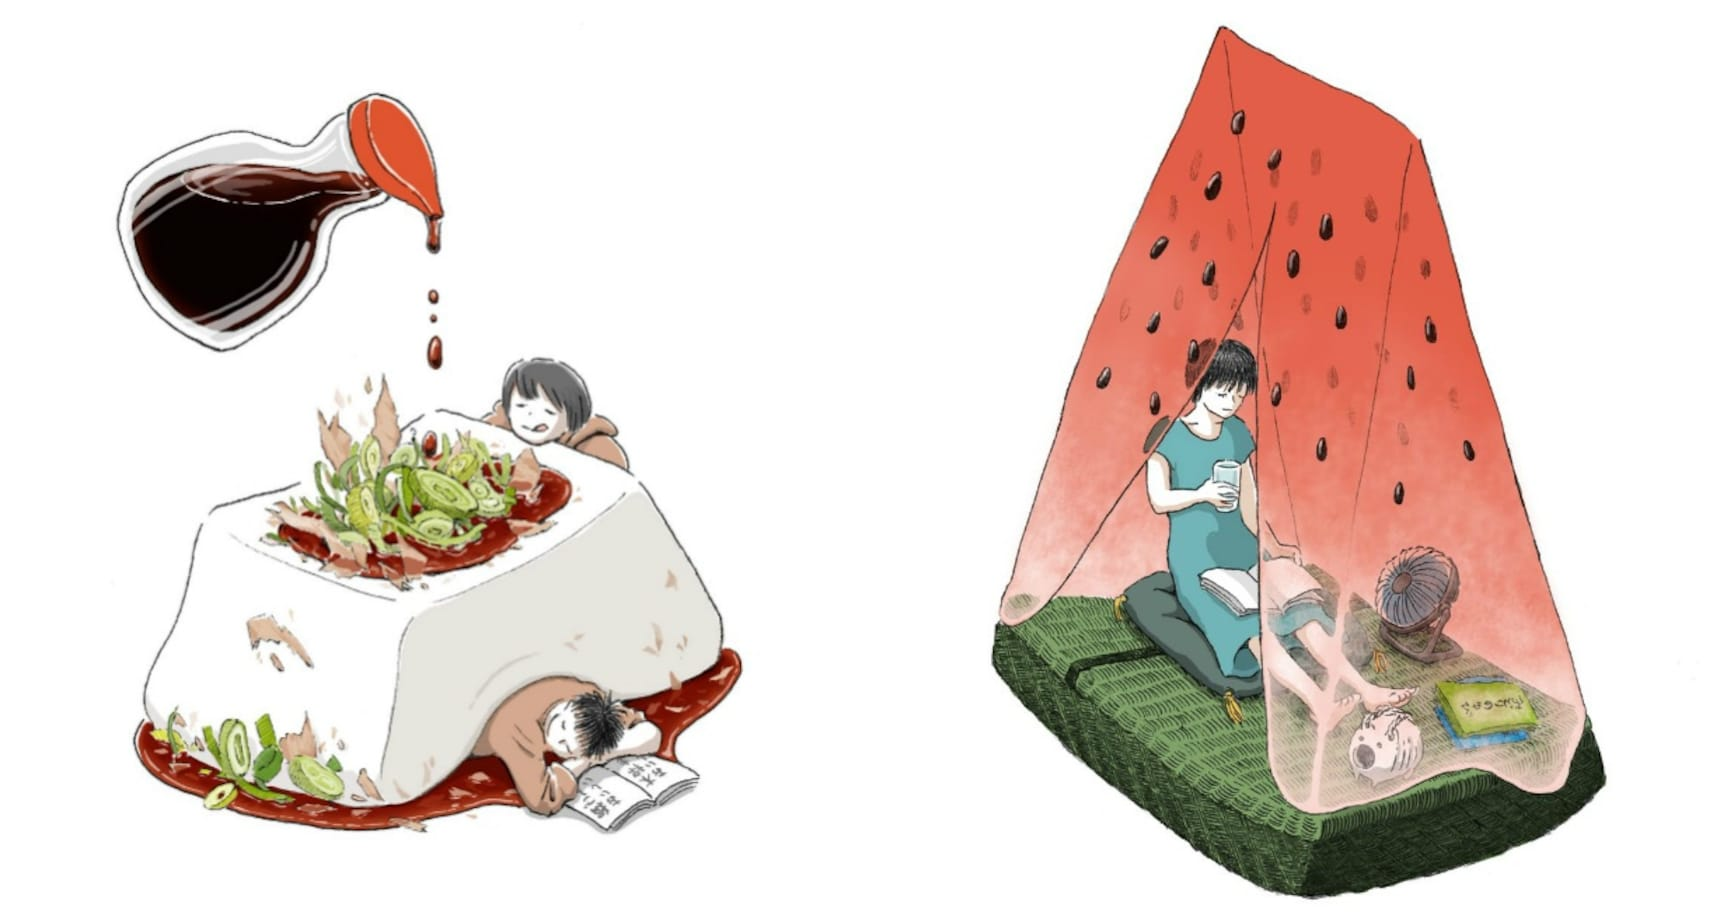 Surreal Illustrations Are a Slice of Life